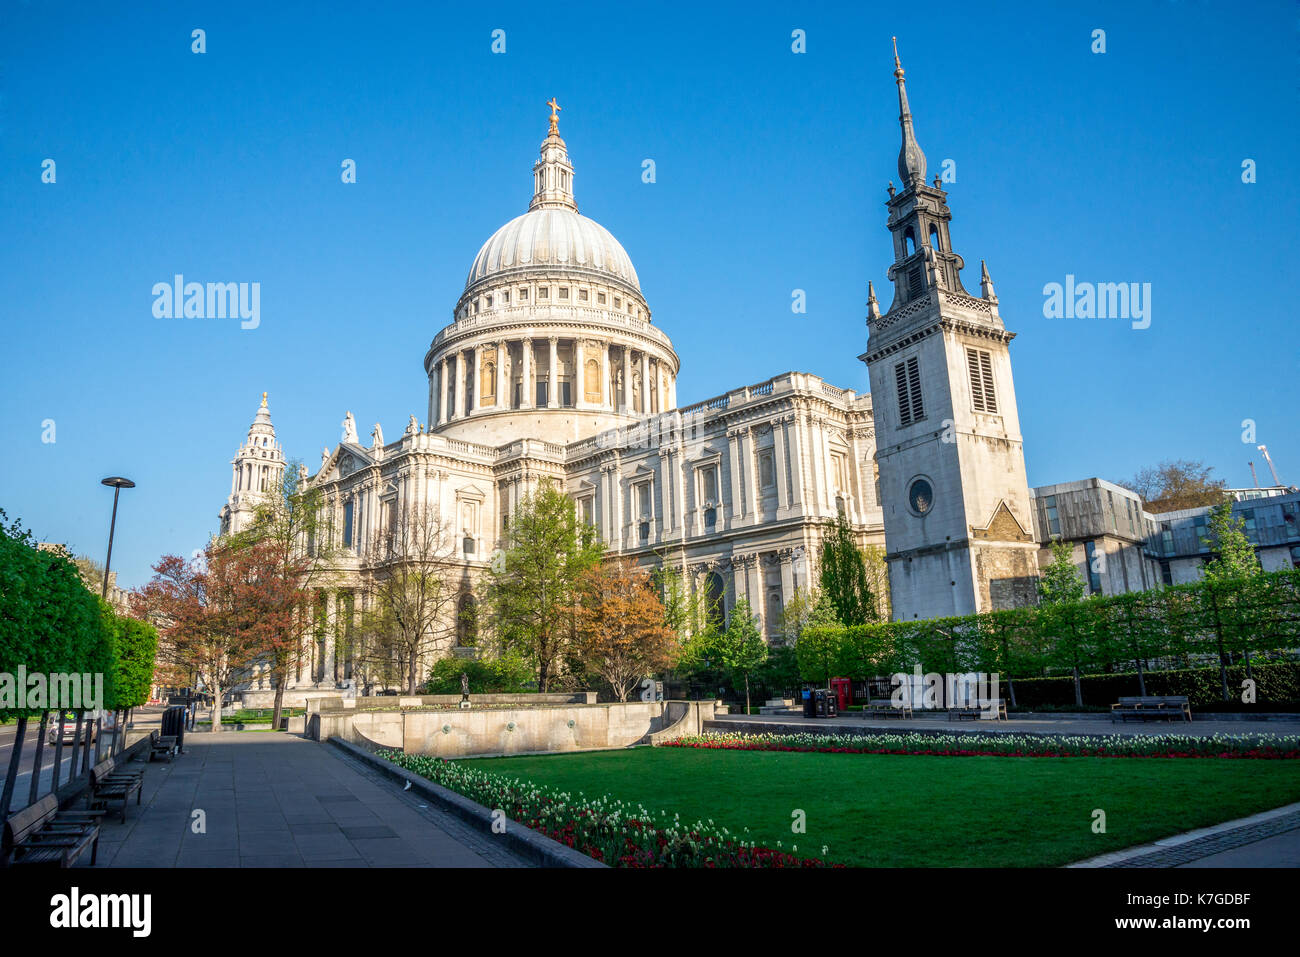 A view of St Paul's Cathedral from Festival Gardens in central London, Great Britain - Stock Image